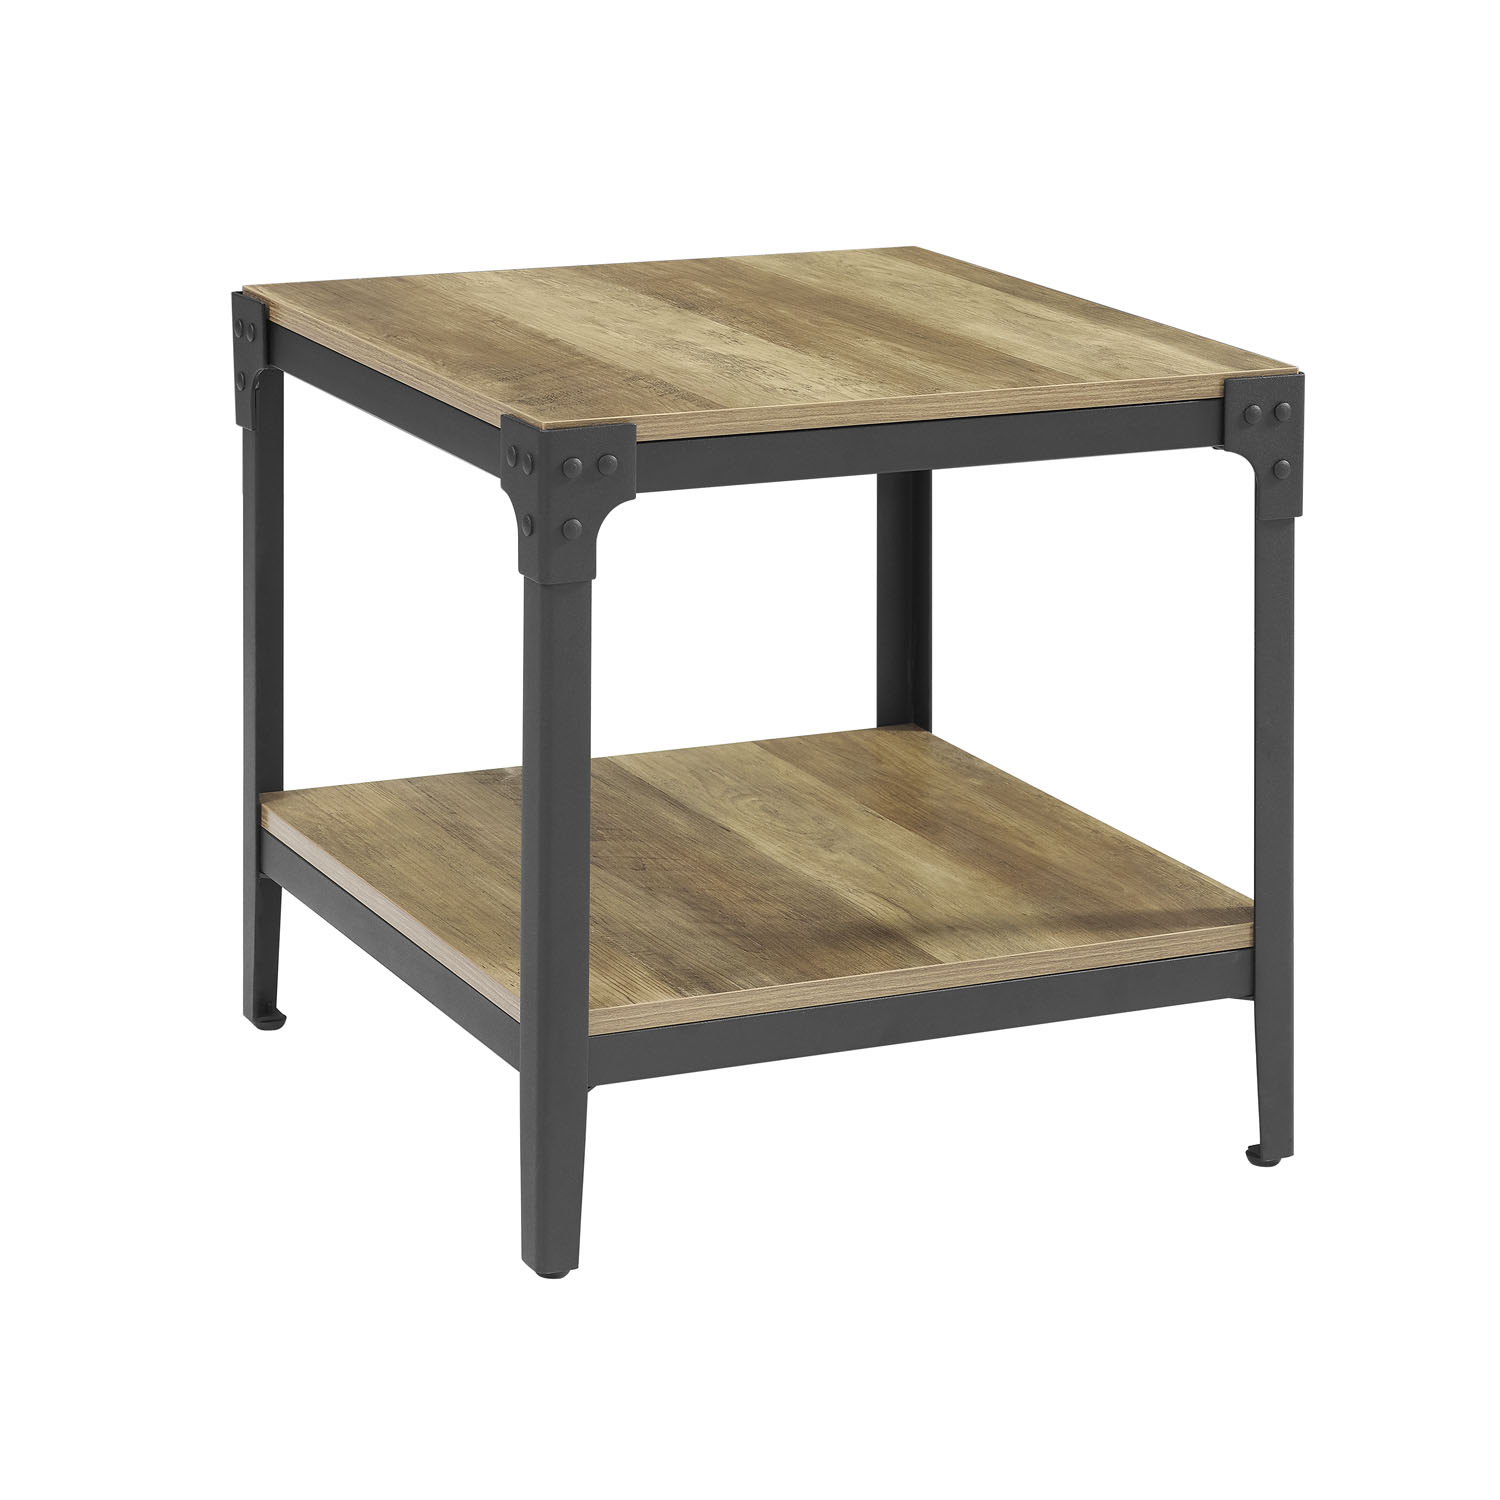 We Furniture Angle Iron Rustic Wood End Table Set Of 2 Rustic Oak